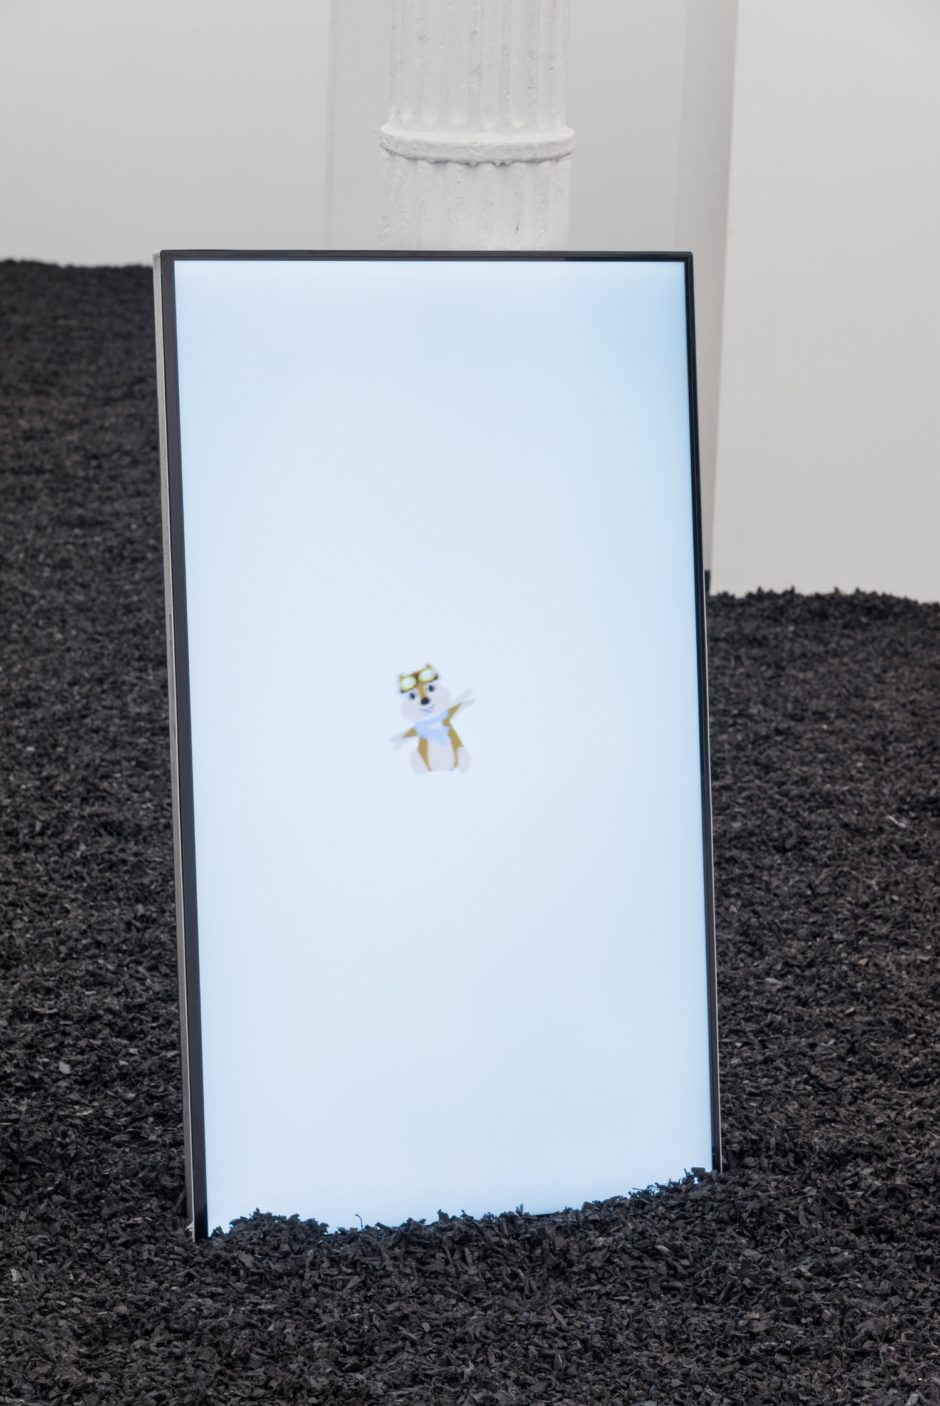 """Hipmunk TV screen"", 2014, television with digital GIF, 44 x 25.5 inches, 111.8 x 64.8 cm"